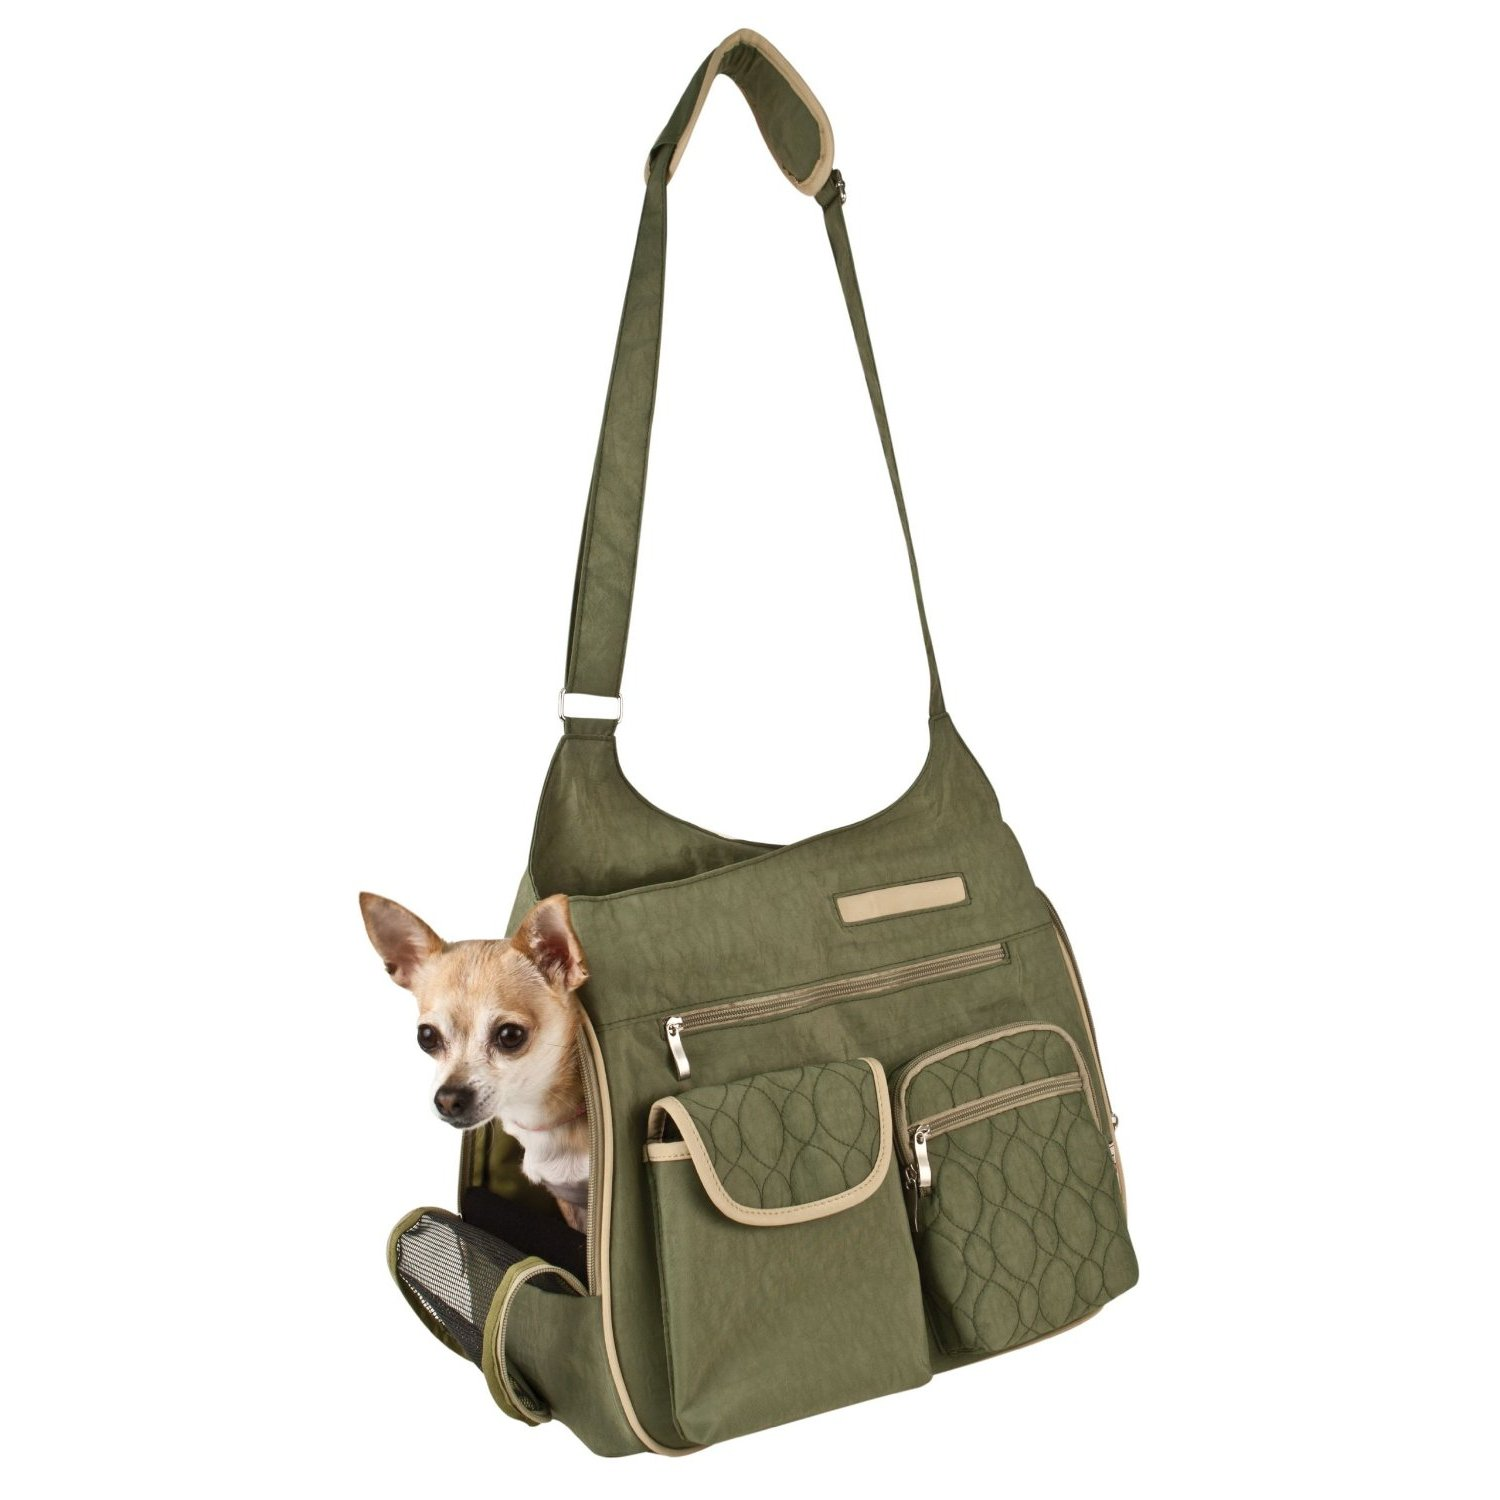 Dog carriers airline approved cabin dog carriers airline for Air travel with dog in cabin